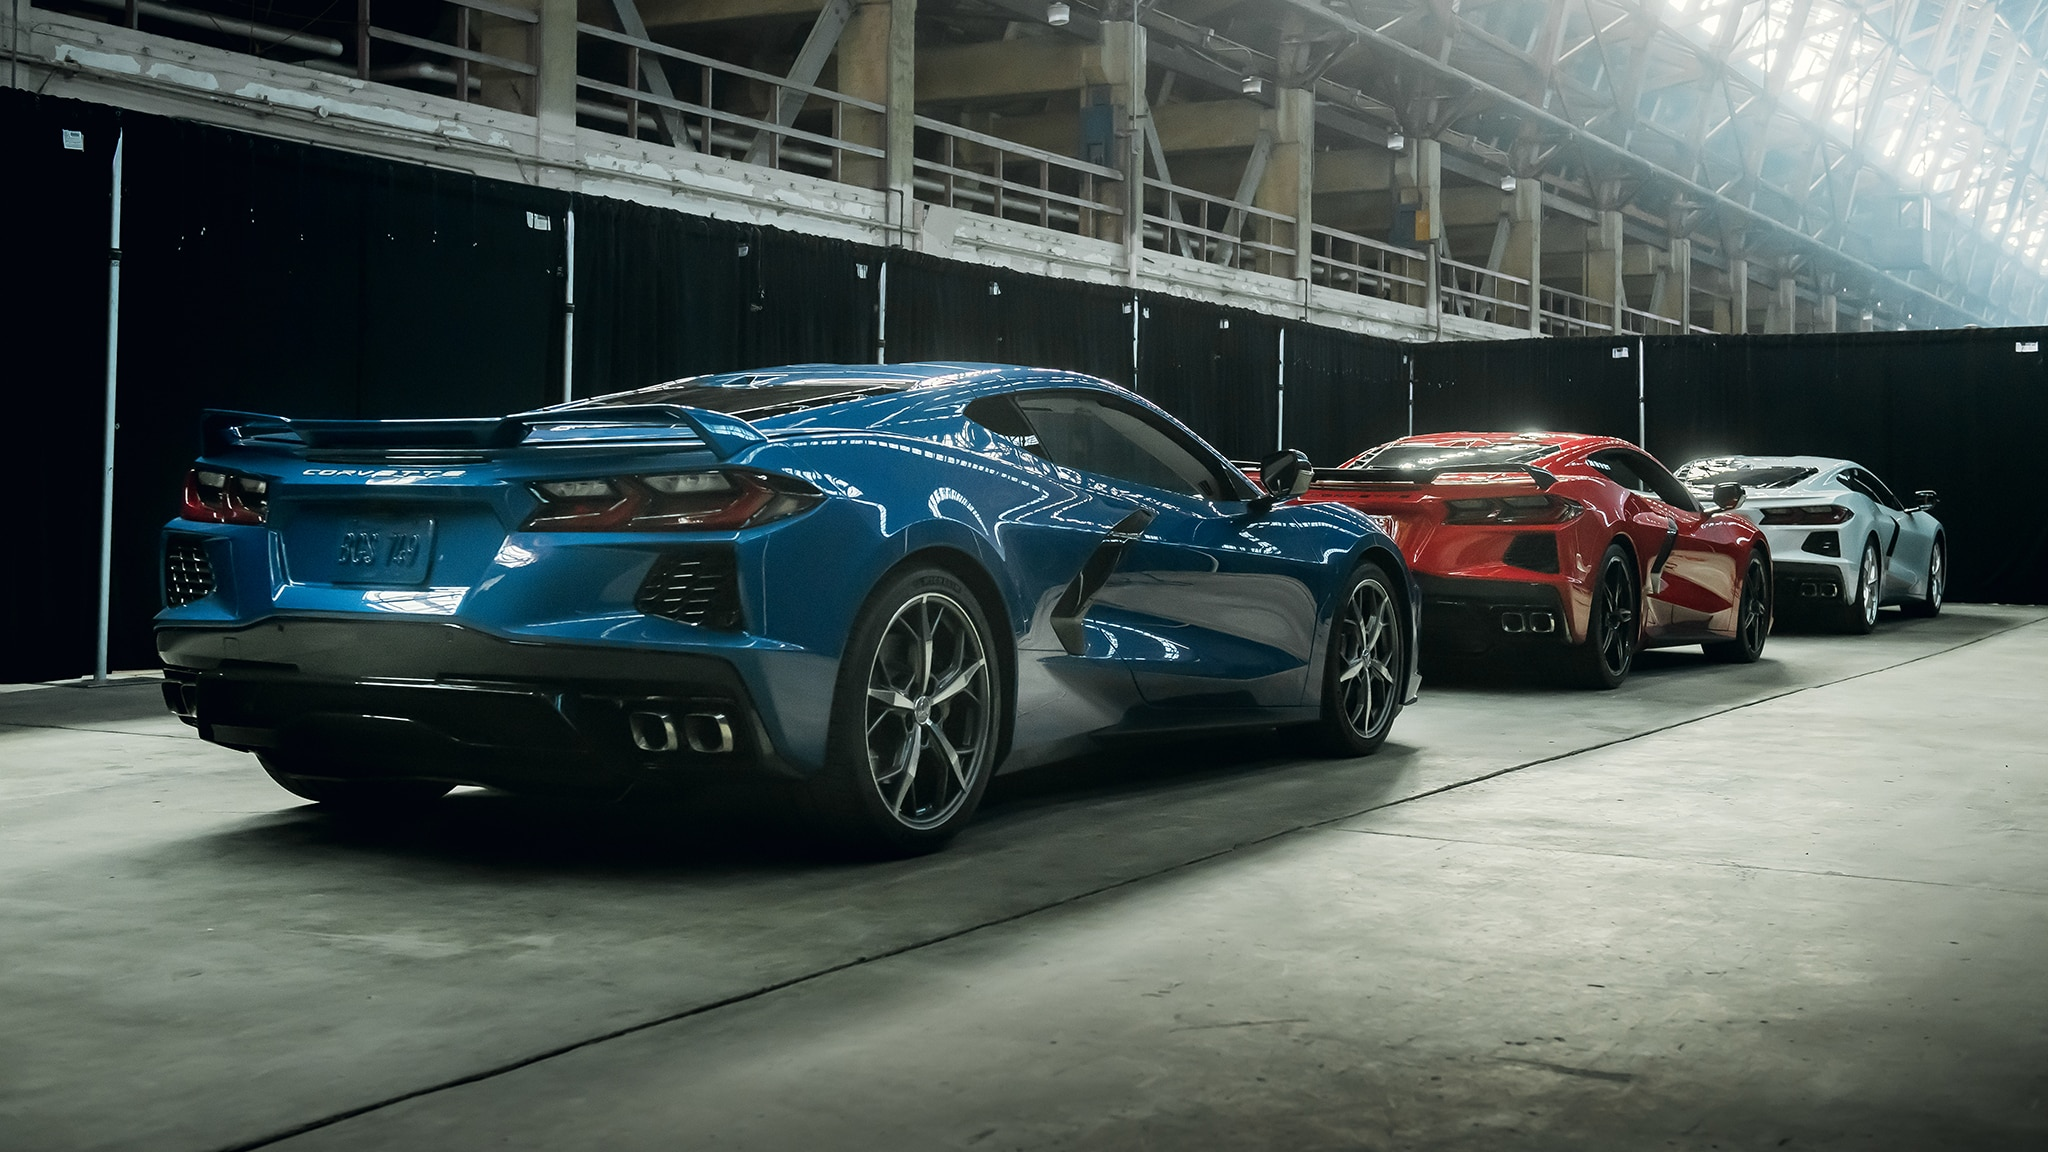 2020 C8 Chevrolet Corvette Stingray All The Colors Carsradars